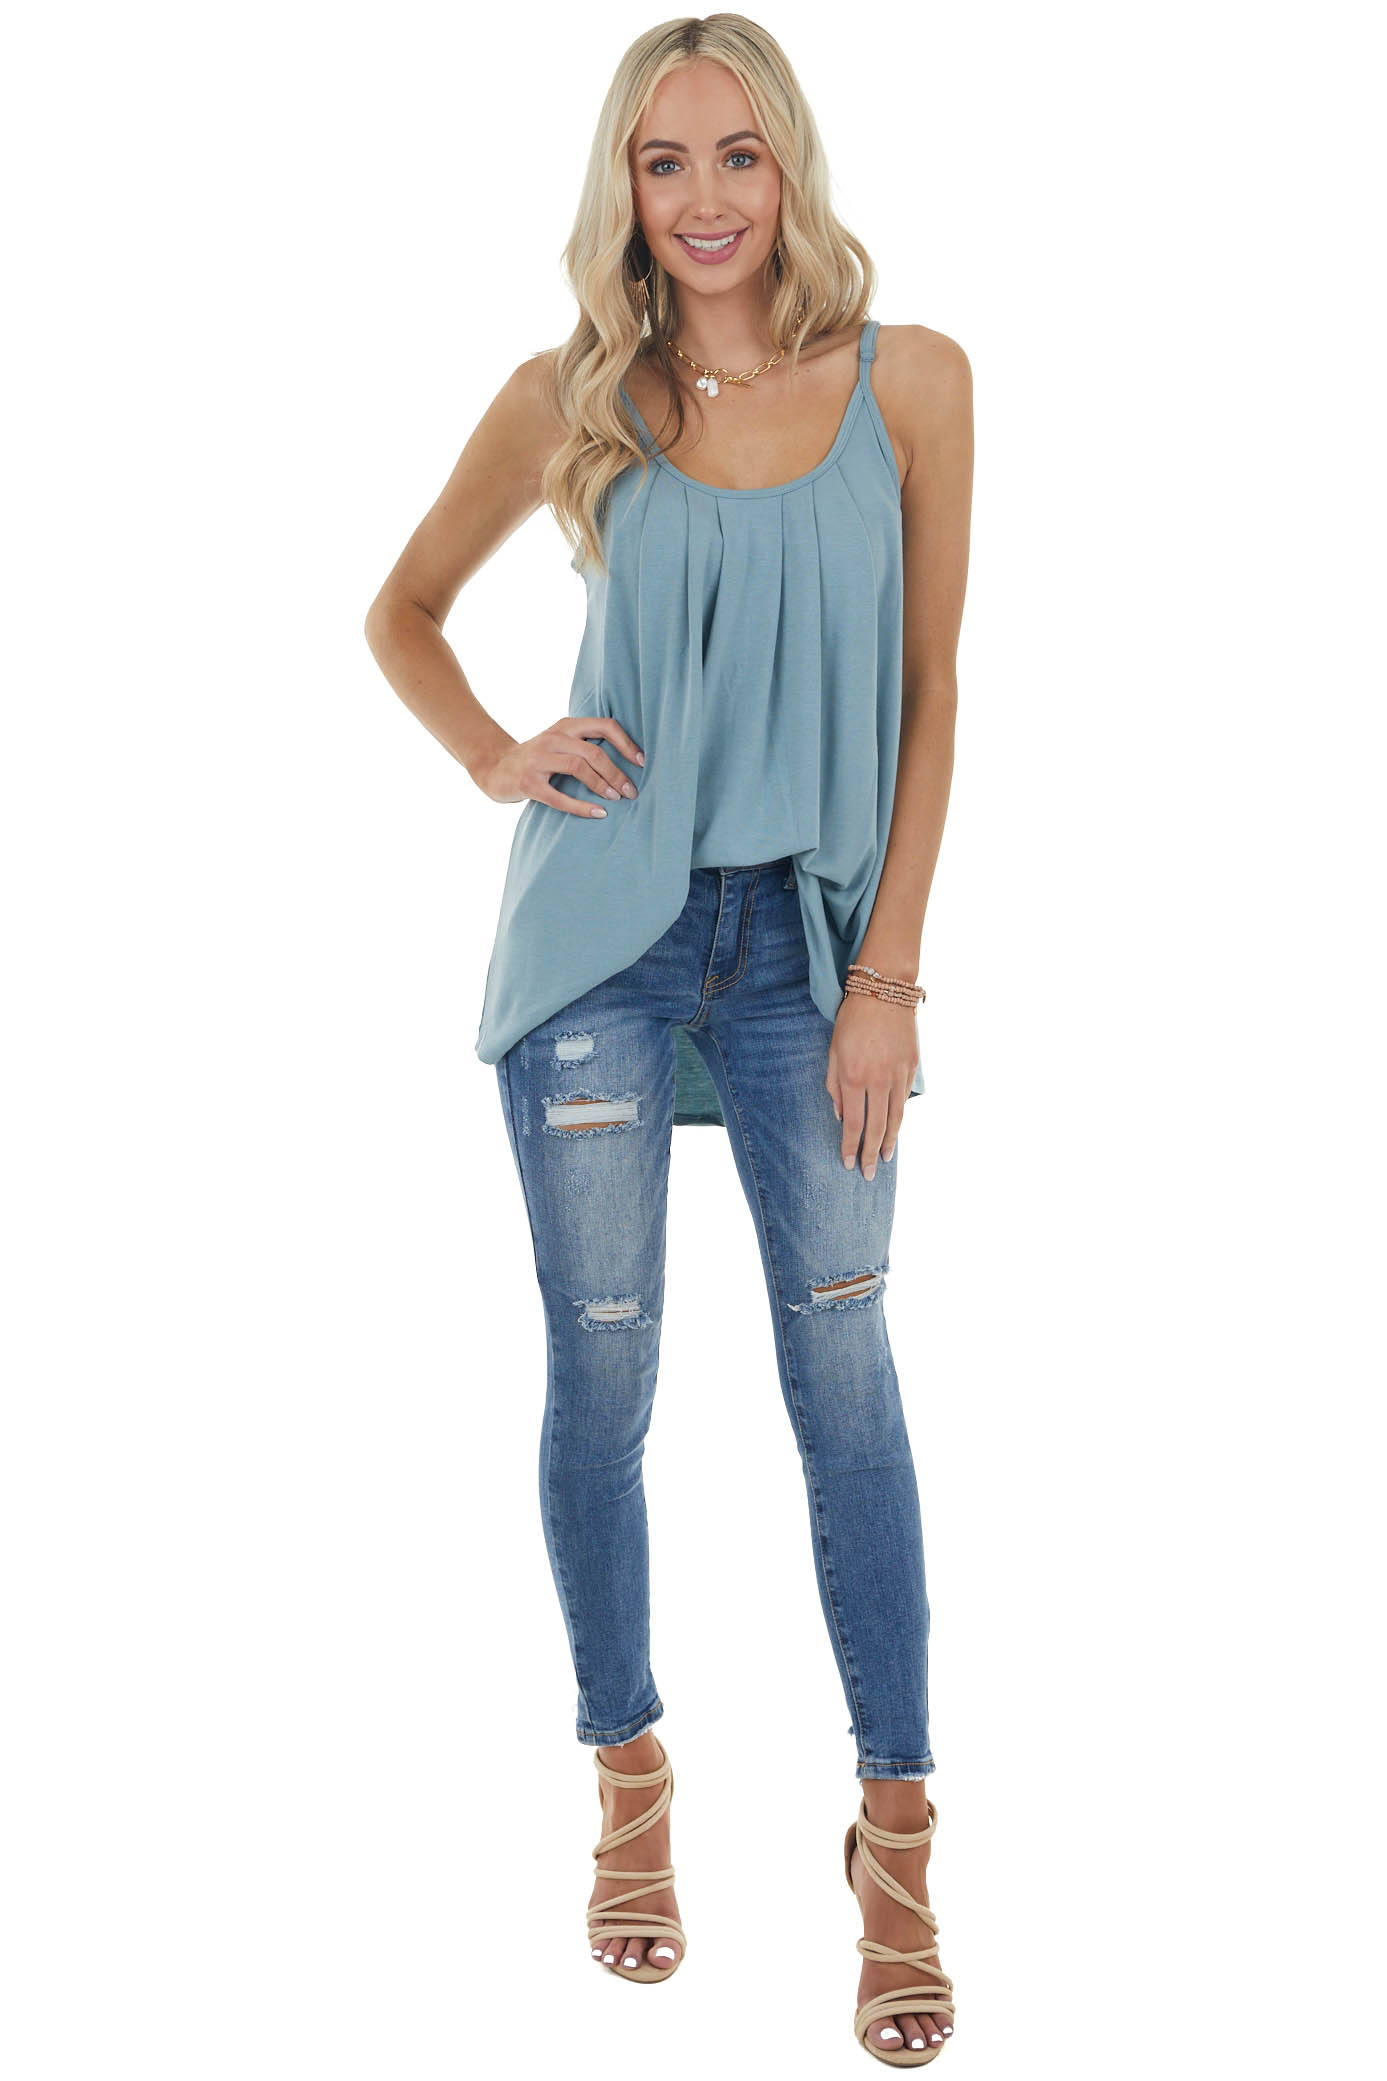 Dusty Teal Sleeveless Knit Top with Pleated Neckline